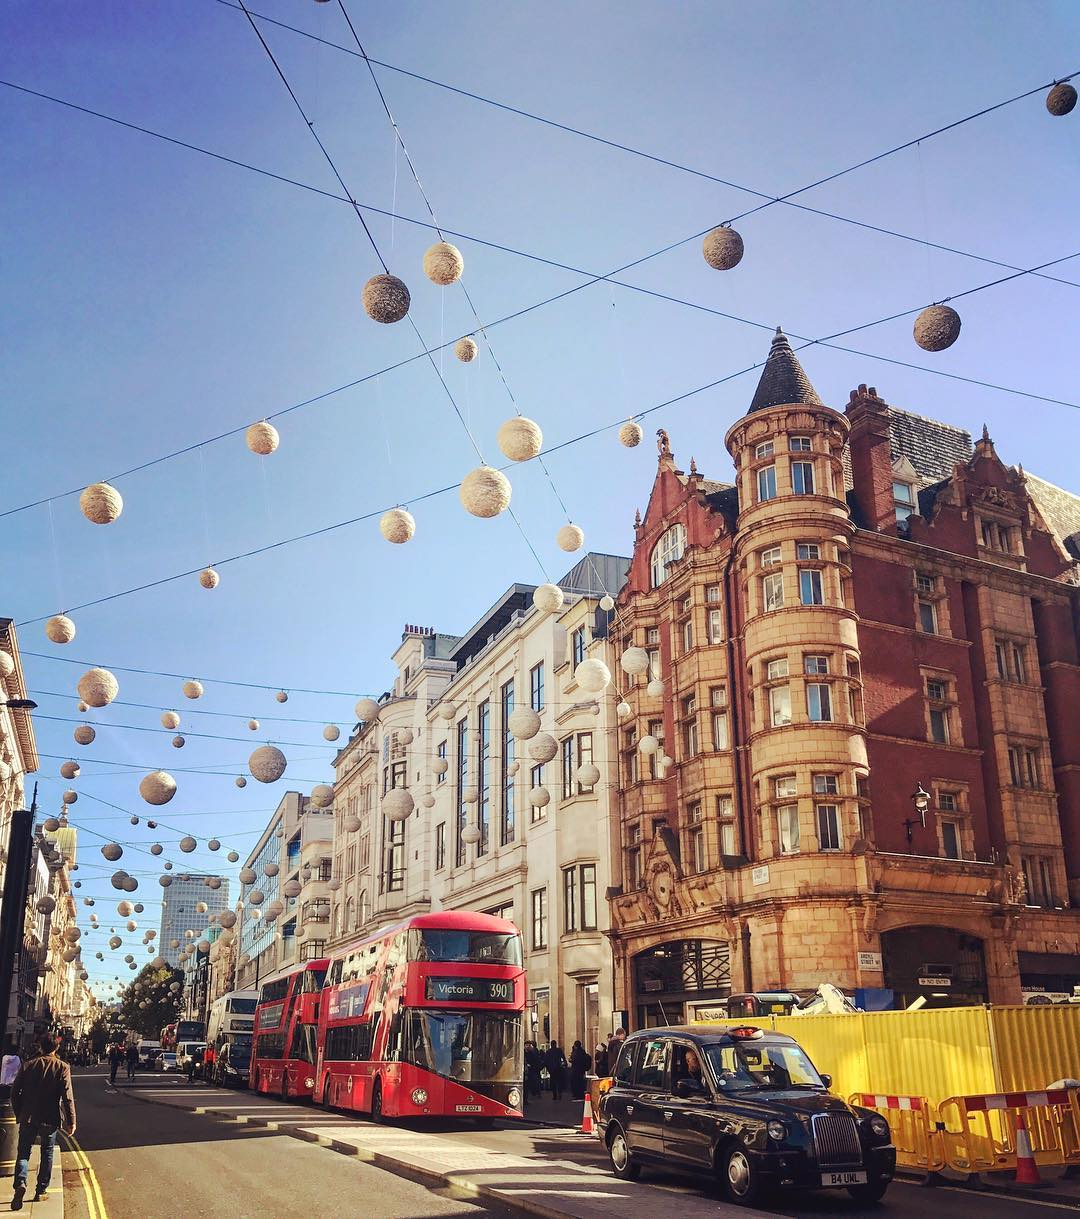 Oxford Street Weihnachtsbeleuchtung.Here S Everything You Need To Know About Oxford Street S 2018